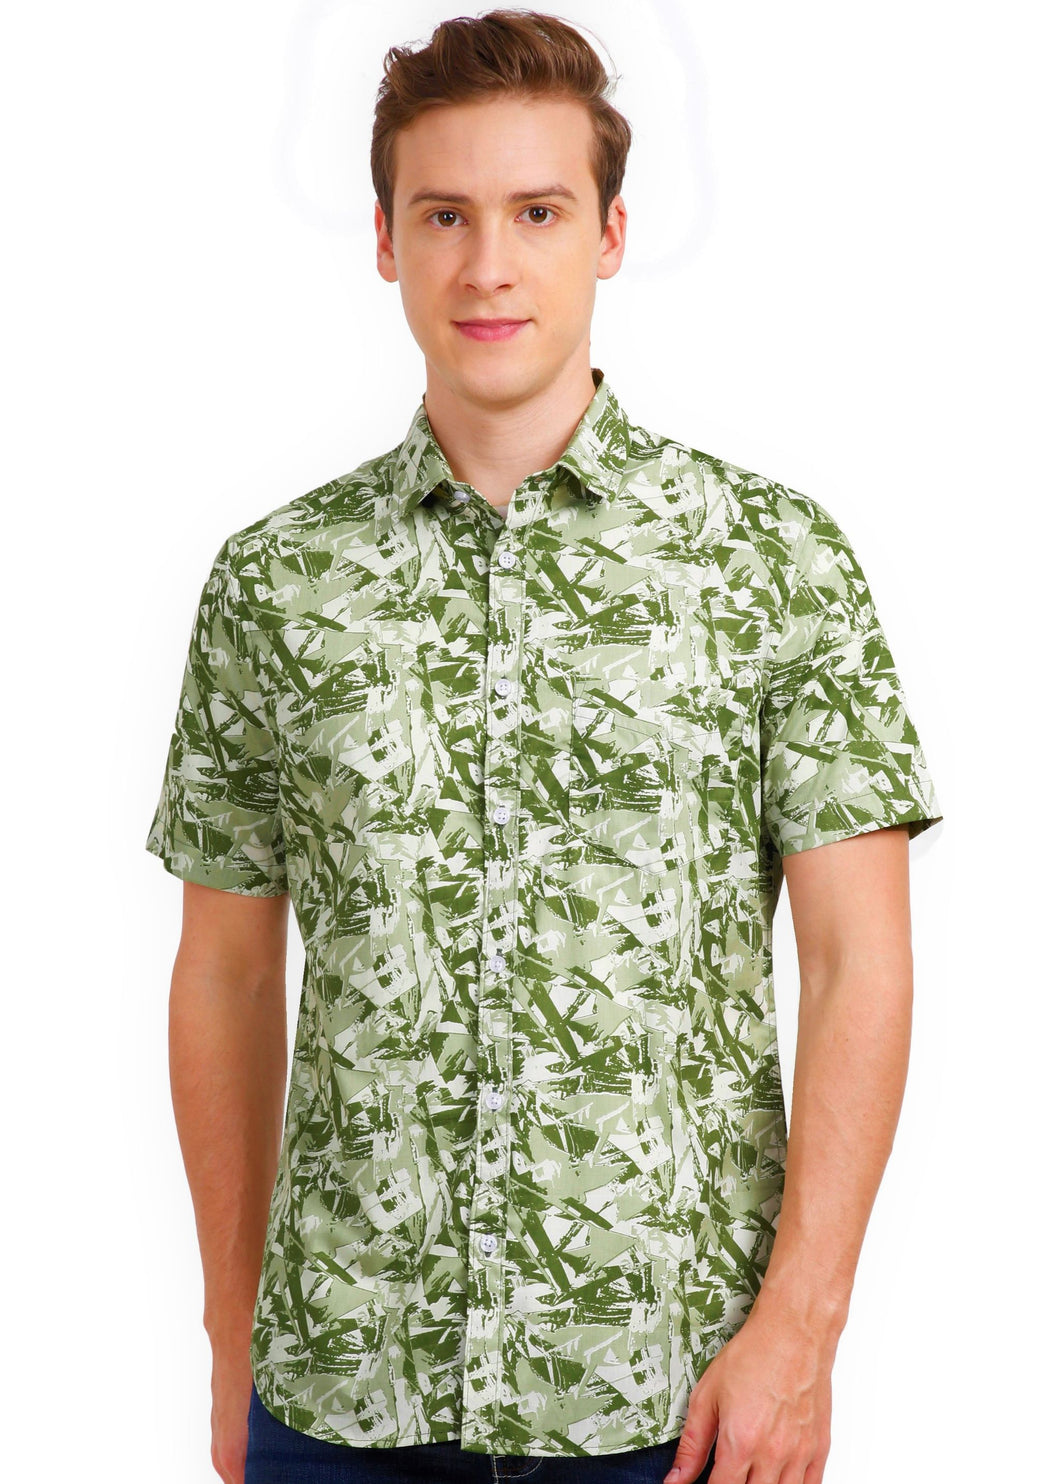 Tusok-mojitoVacation-Printed Shirtimage-Green Zigzag (1)